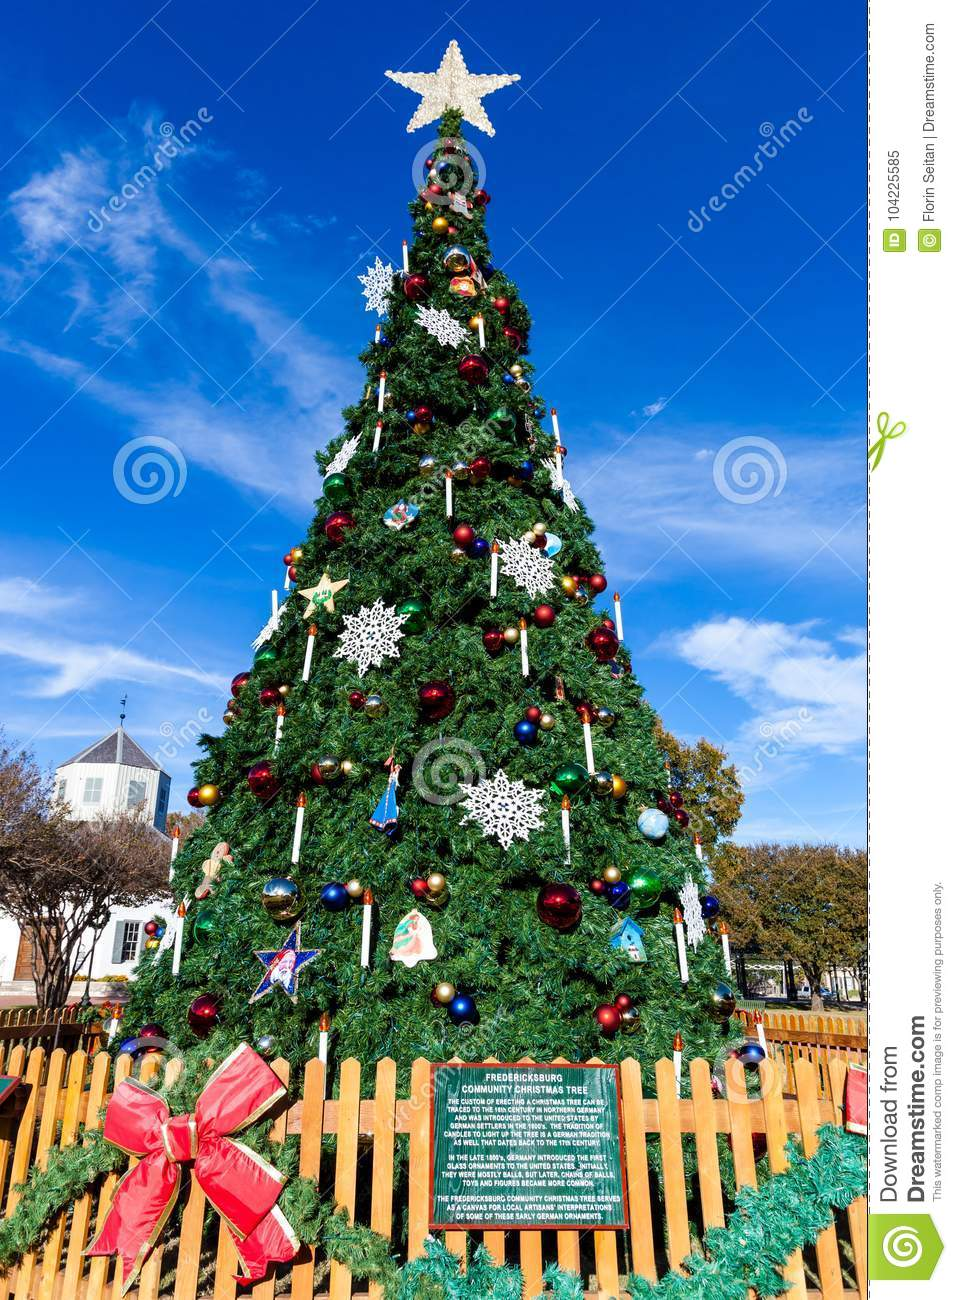 fredericksburg texas november 19 2017 fredericksburg comunity christmas tree installed in marktplats - Fredericksburg Tx Christmas